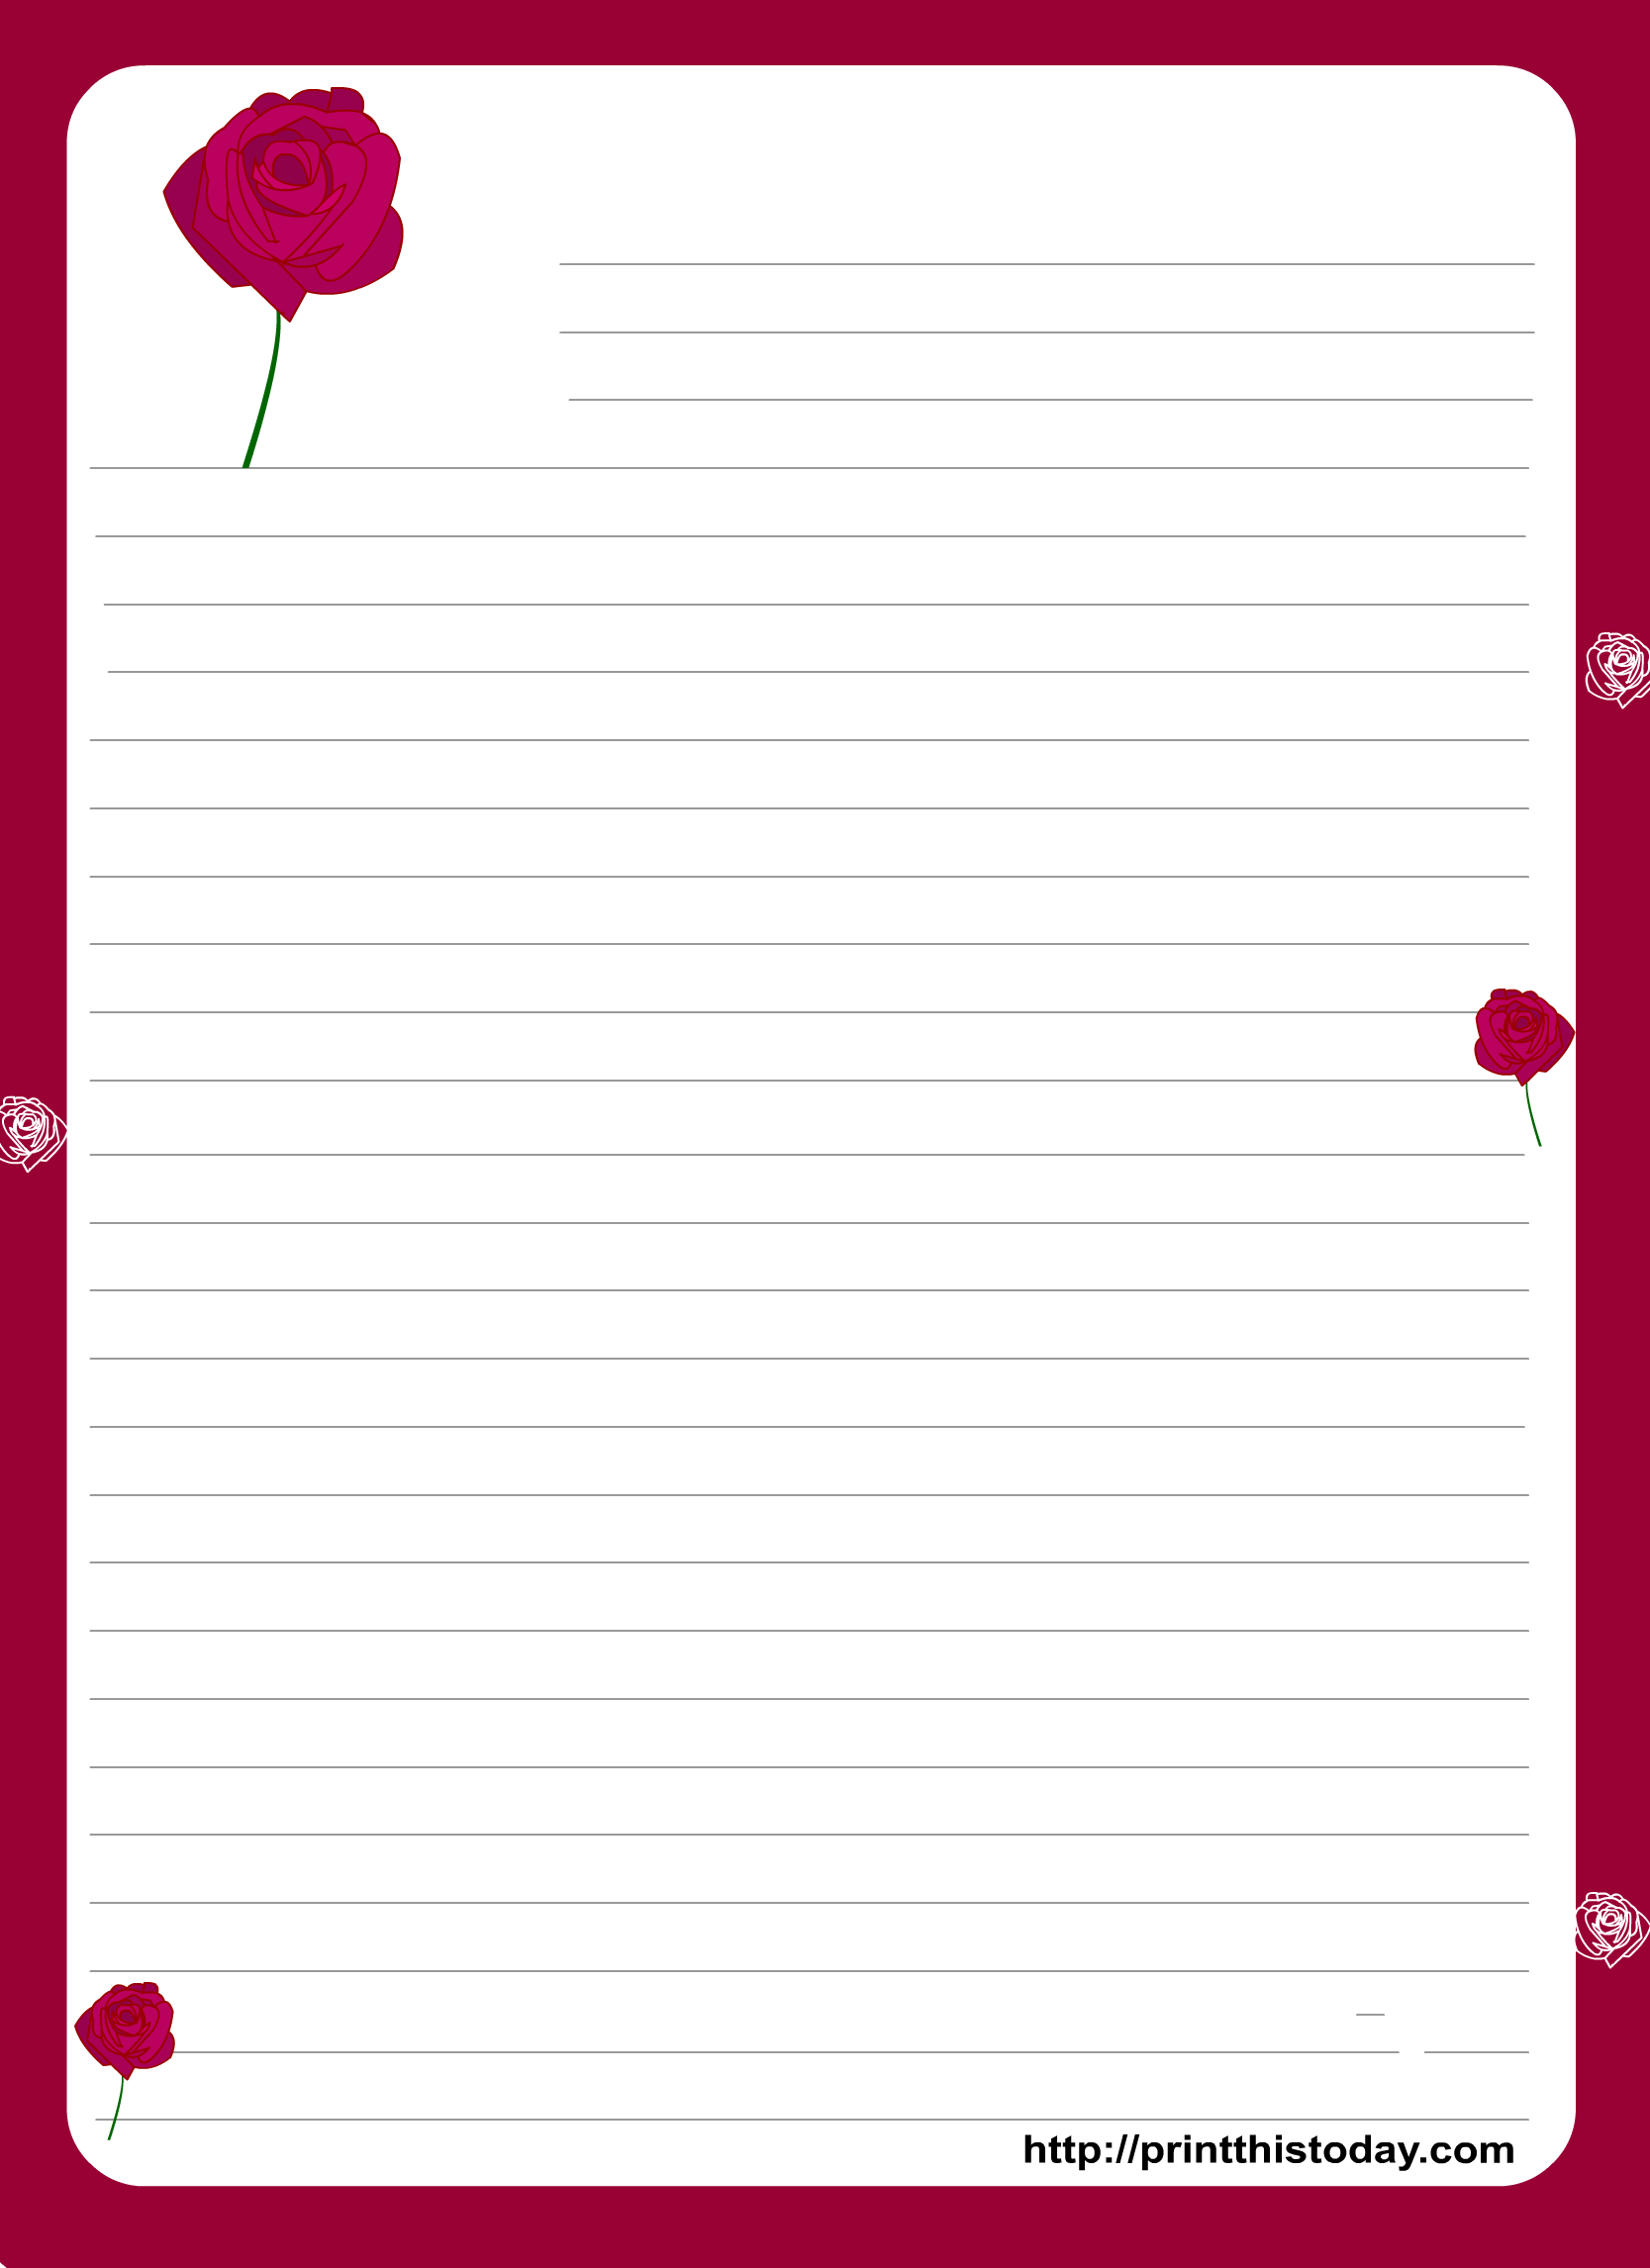 A Cute Letter Writing Paper Decorated With Cute Hearts Is Great To Write A Love Letter